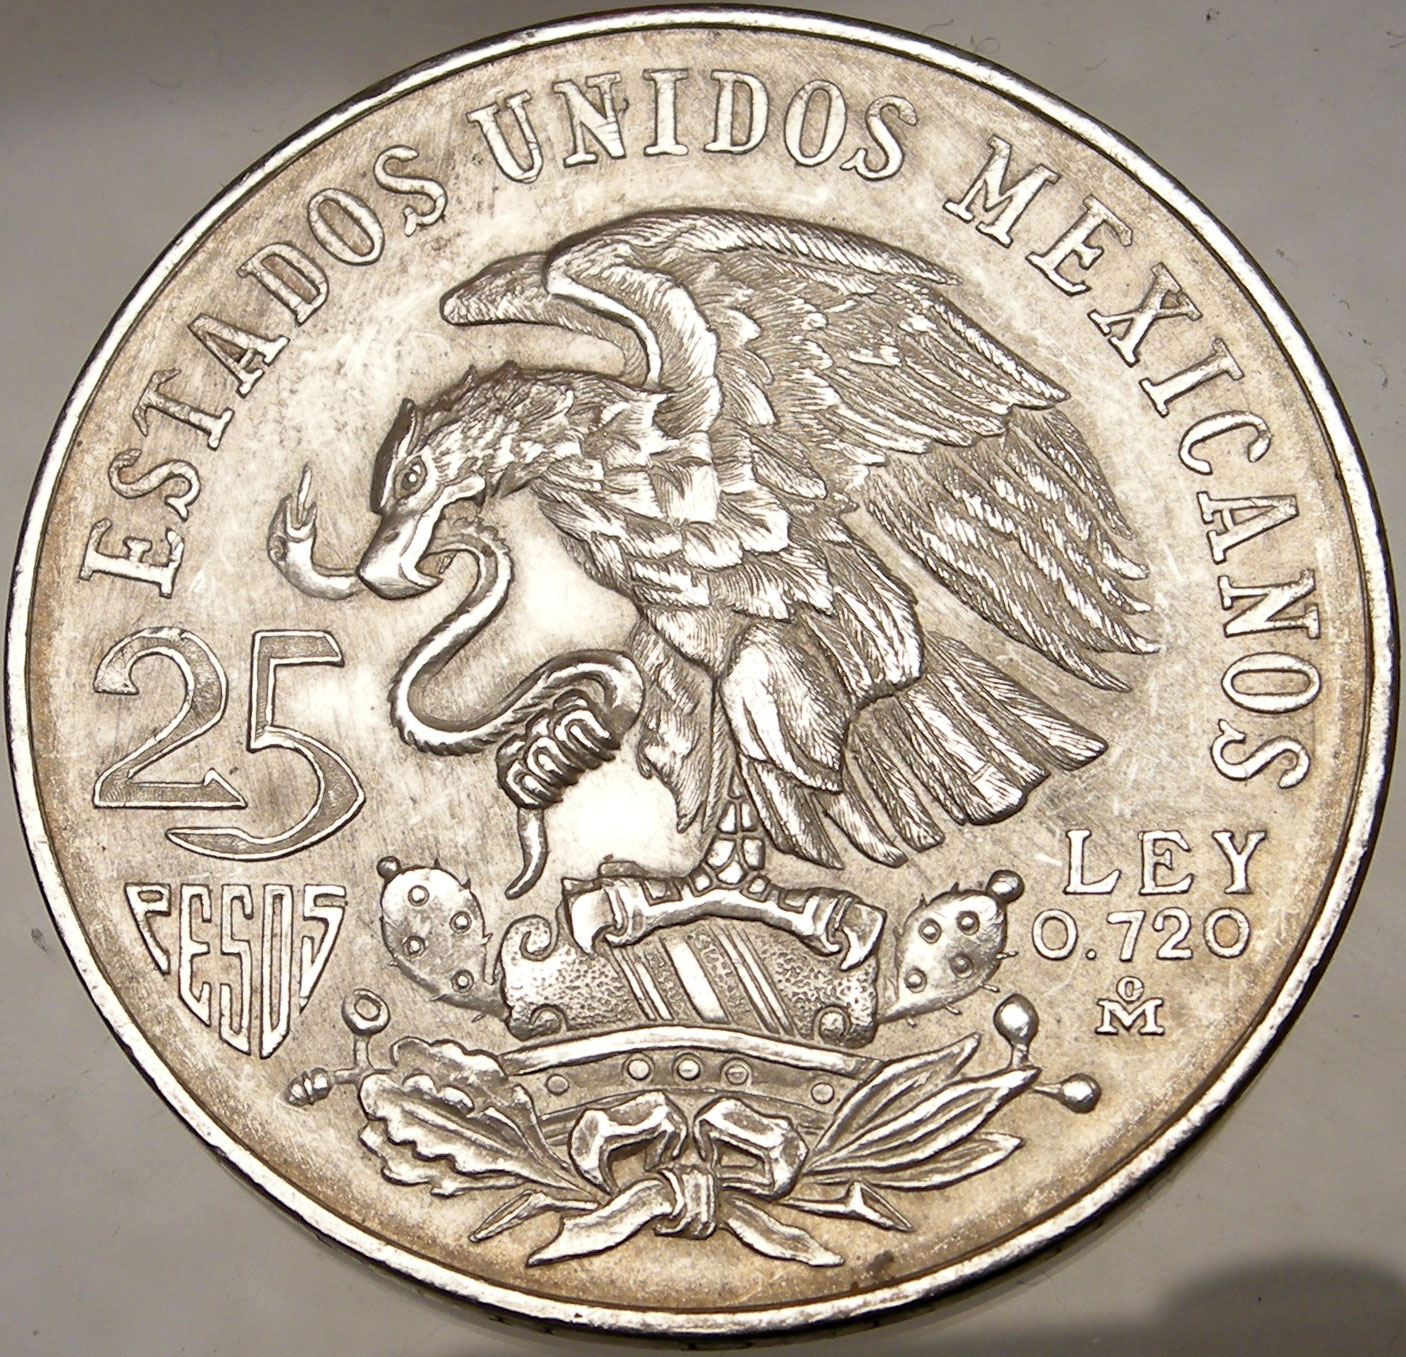 Mexico 1968 25 Peso Olympics 72 Large Silver Coin Eagl